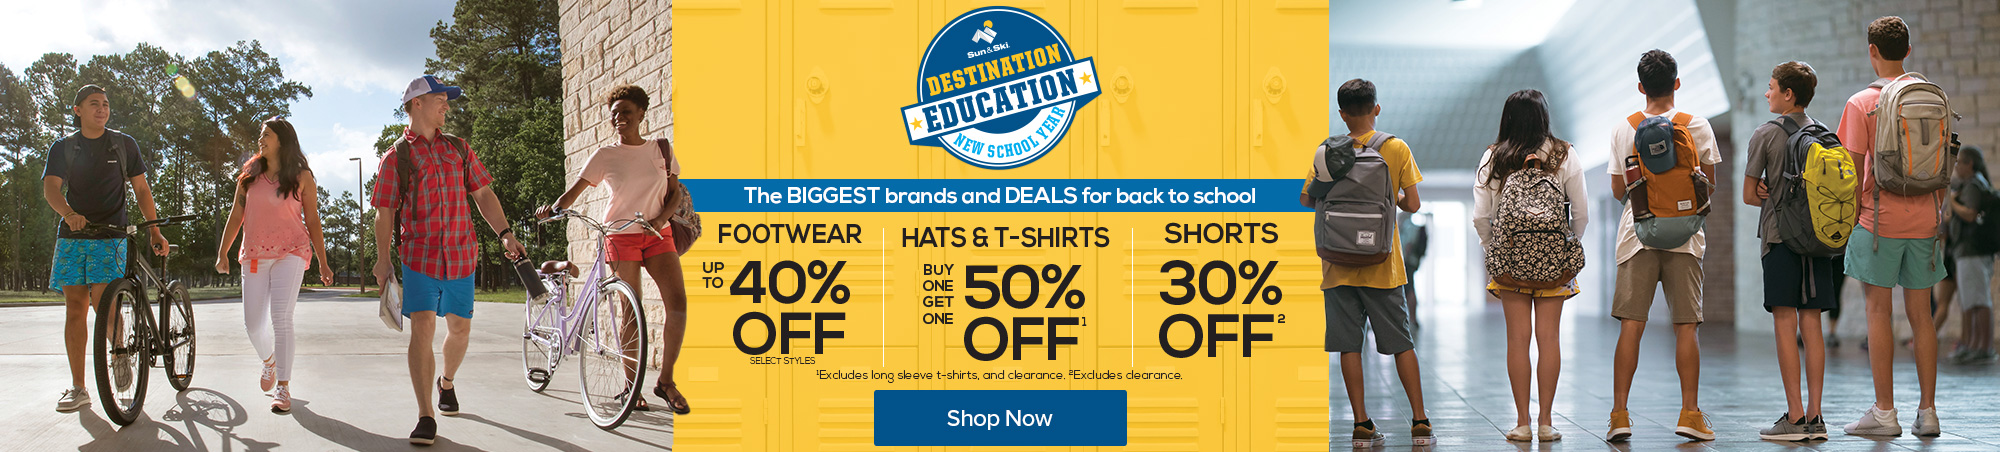 Destination Education. The biggest brands and deals for back to school. Shop now.